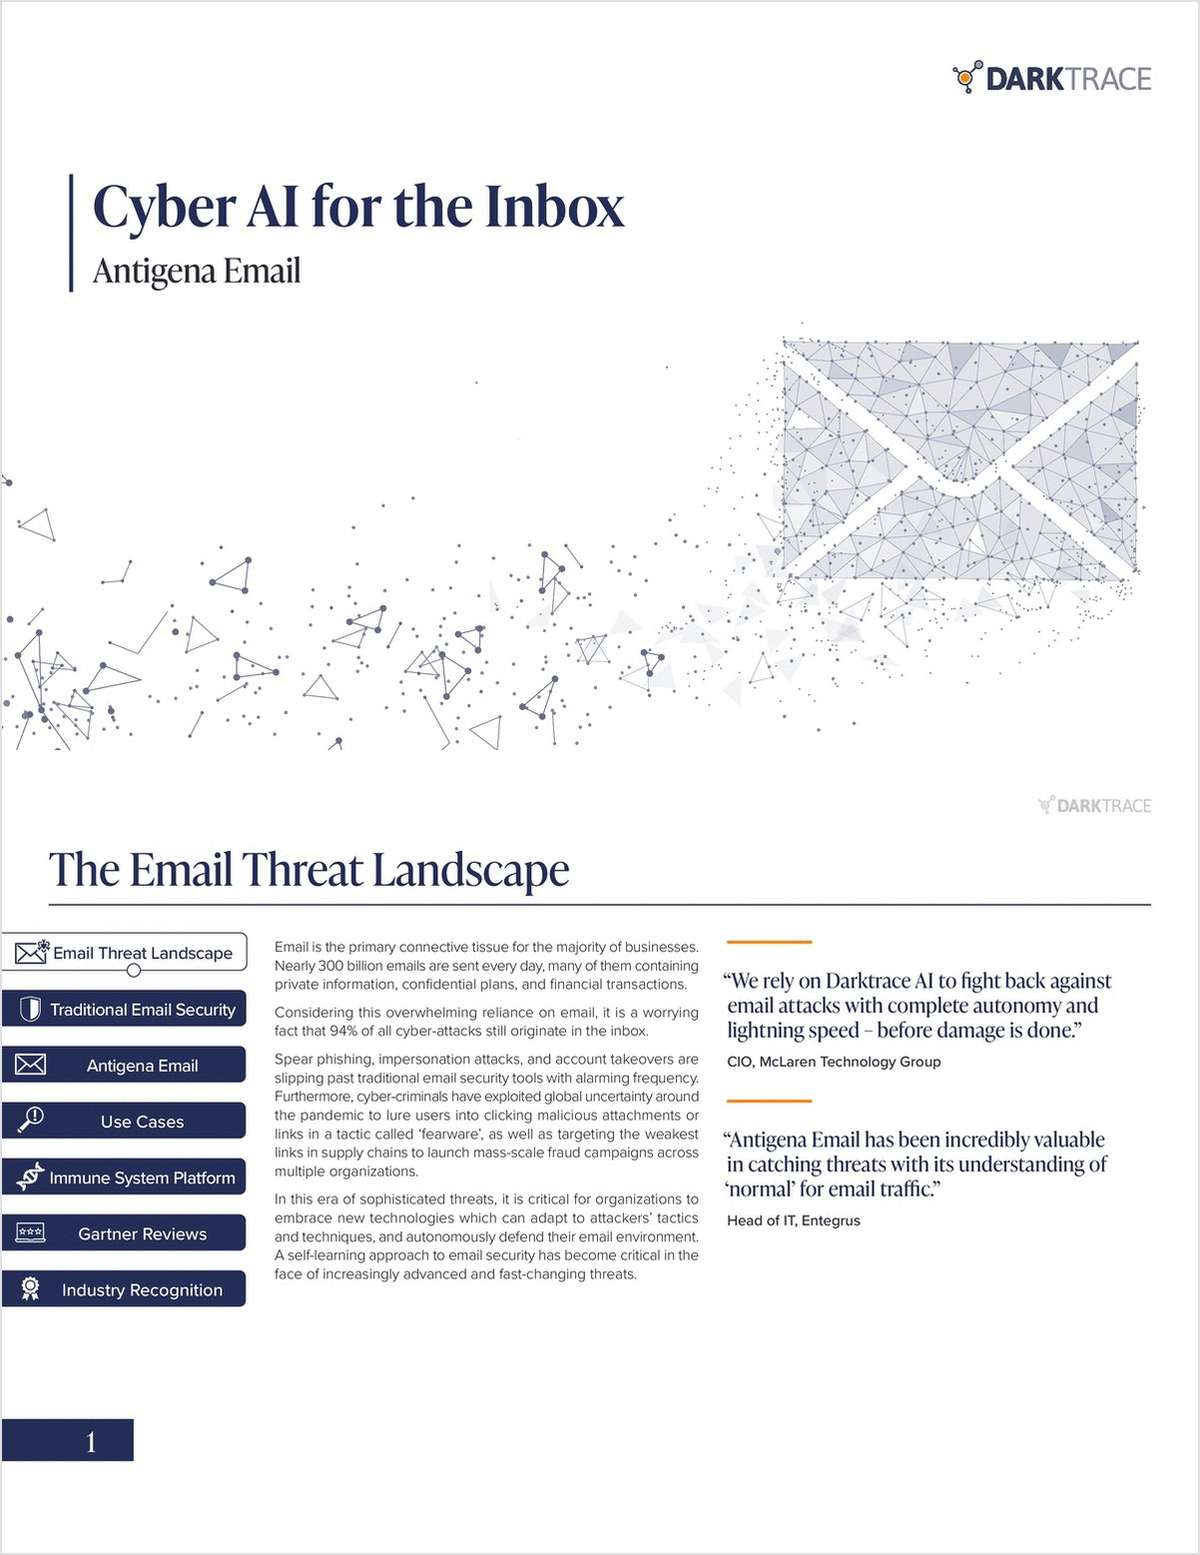 The Cyber AI for the Inbox